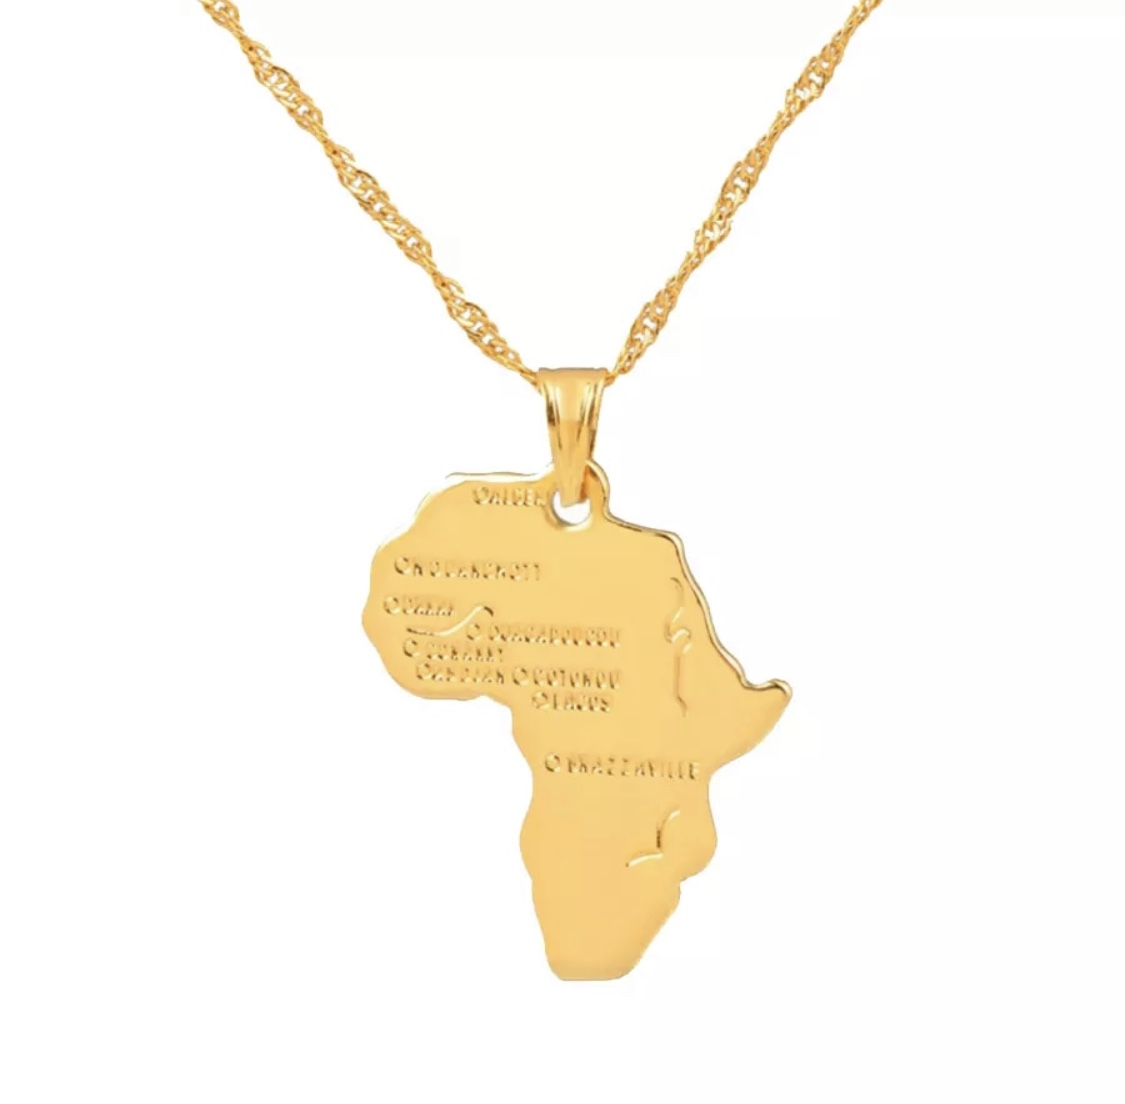 Unisex Fashion Necklace With African Map Pendant In Silver/Gold